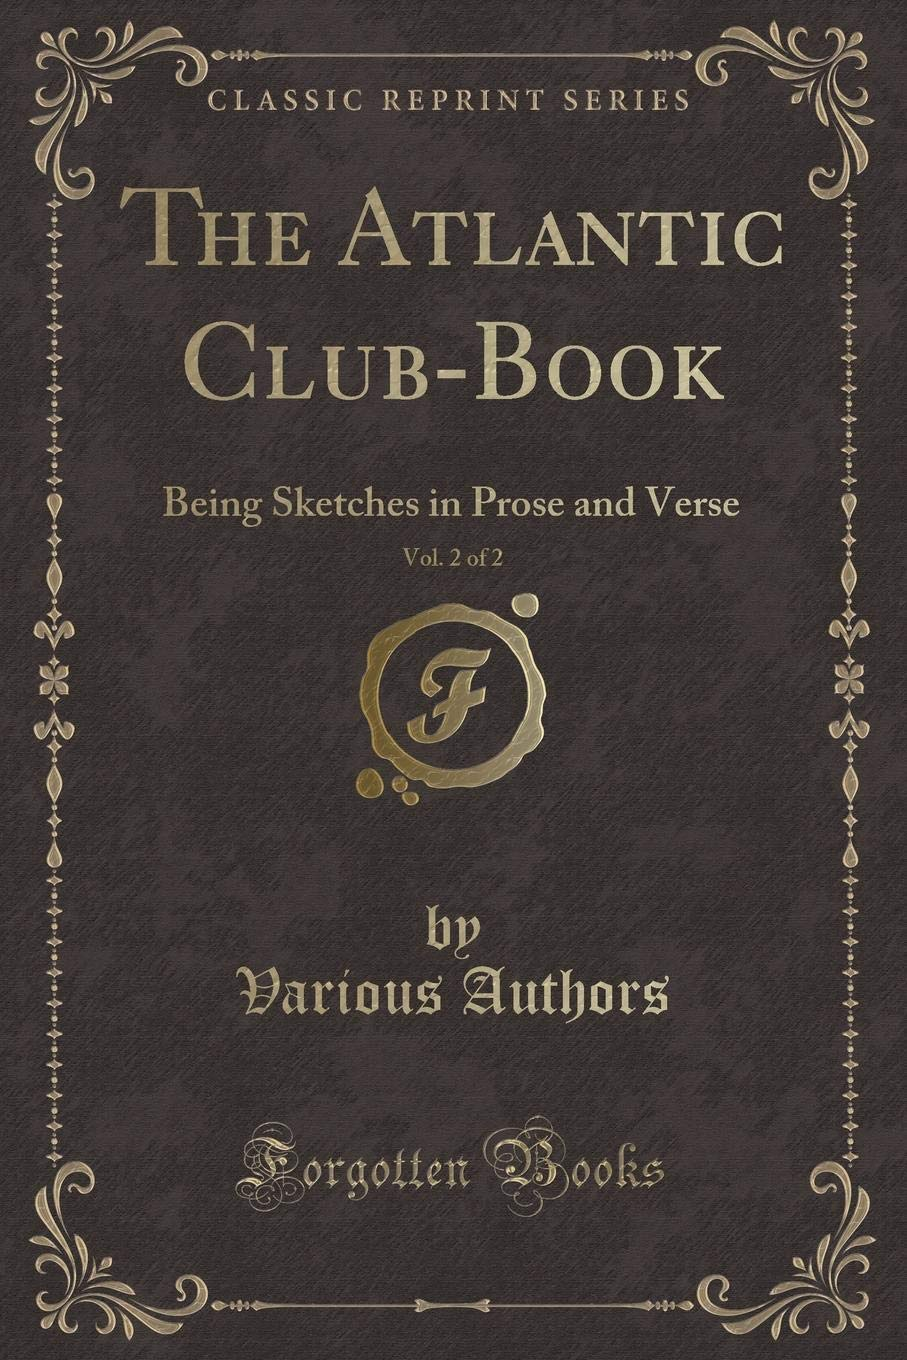 The Atlantic Club-Book, Vol. 2 of 2: Being Sketches in Prose and Verse (Classic Reprint) pdf epub